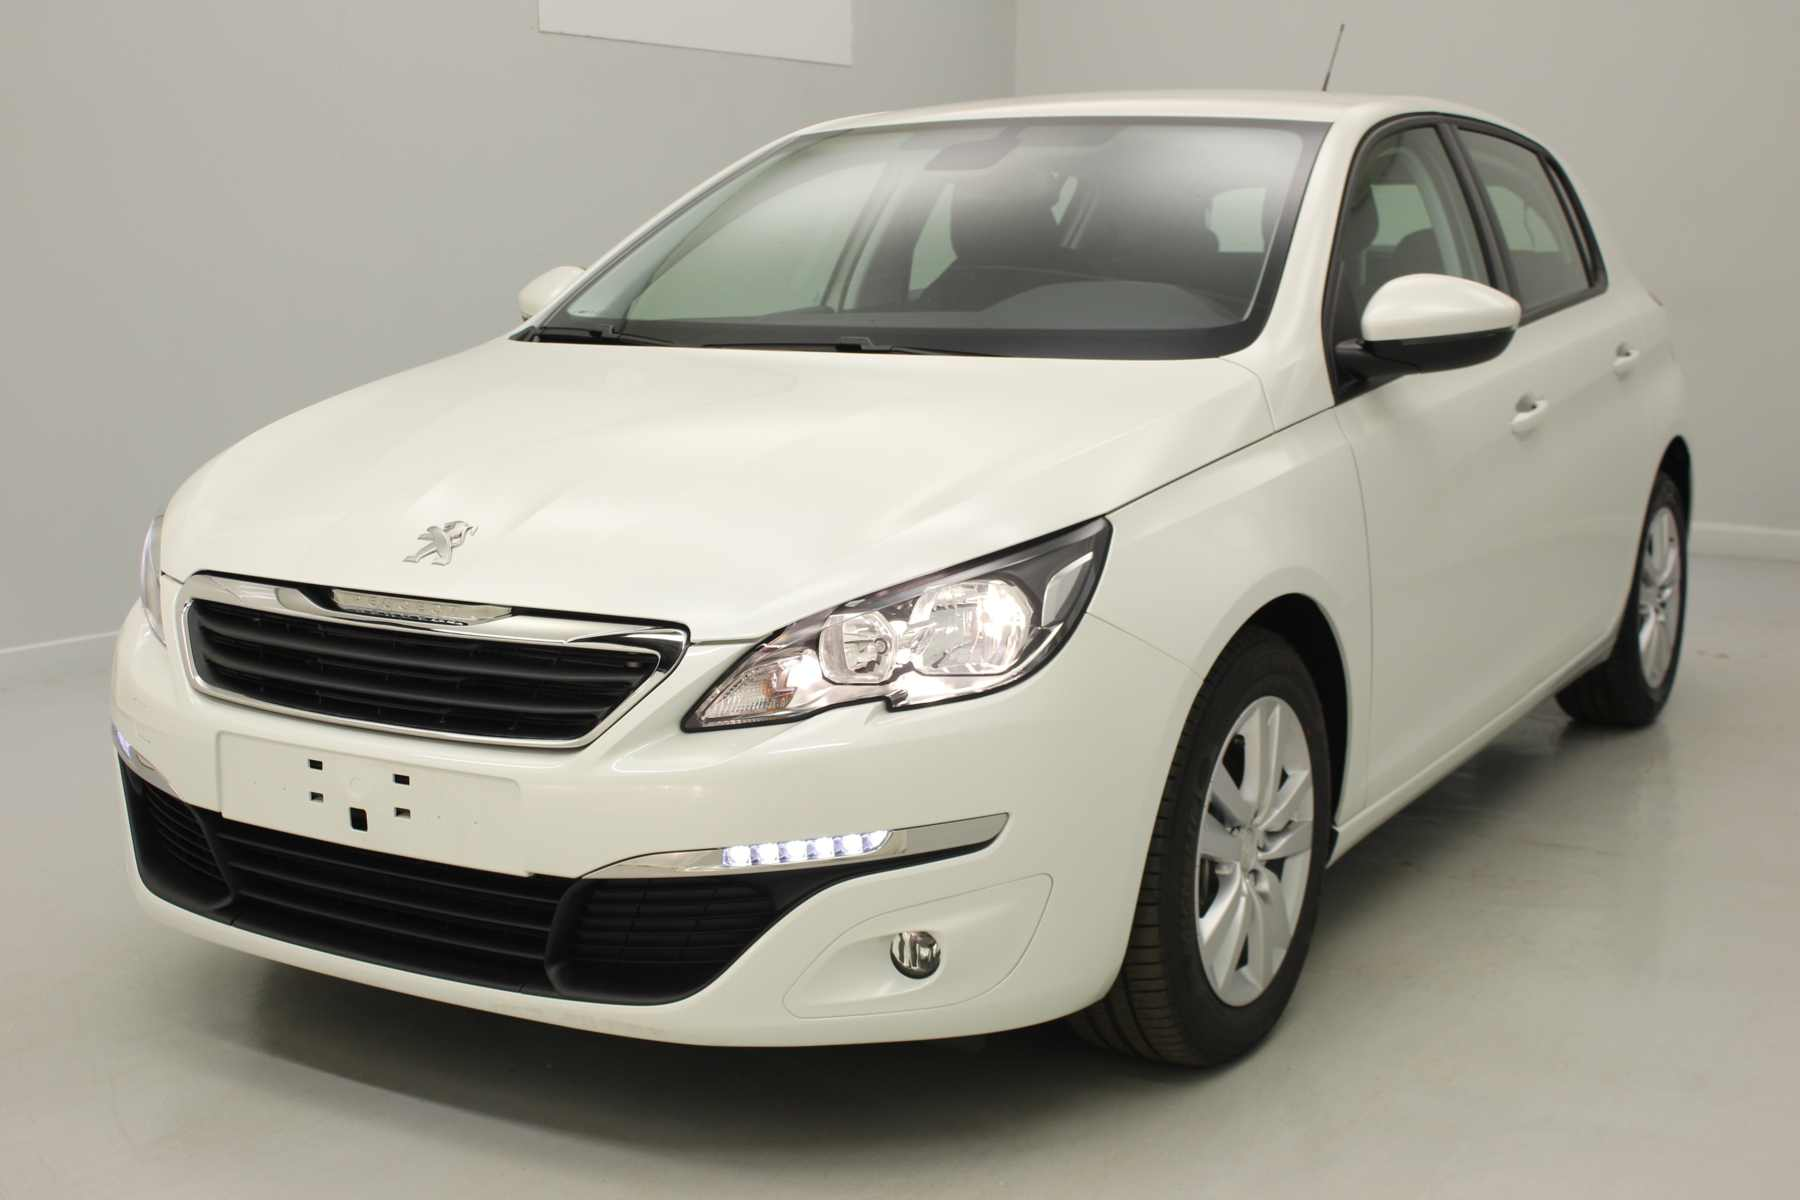 PEUGEOT 308 1.6 BlueHDi 120ch S&S BVM6 Active Blanc Nacré + Navigation avec options